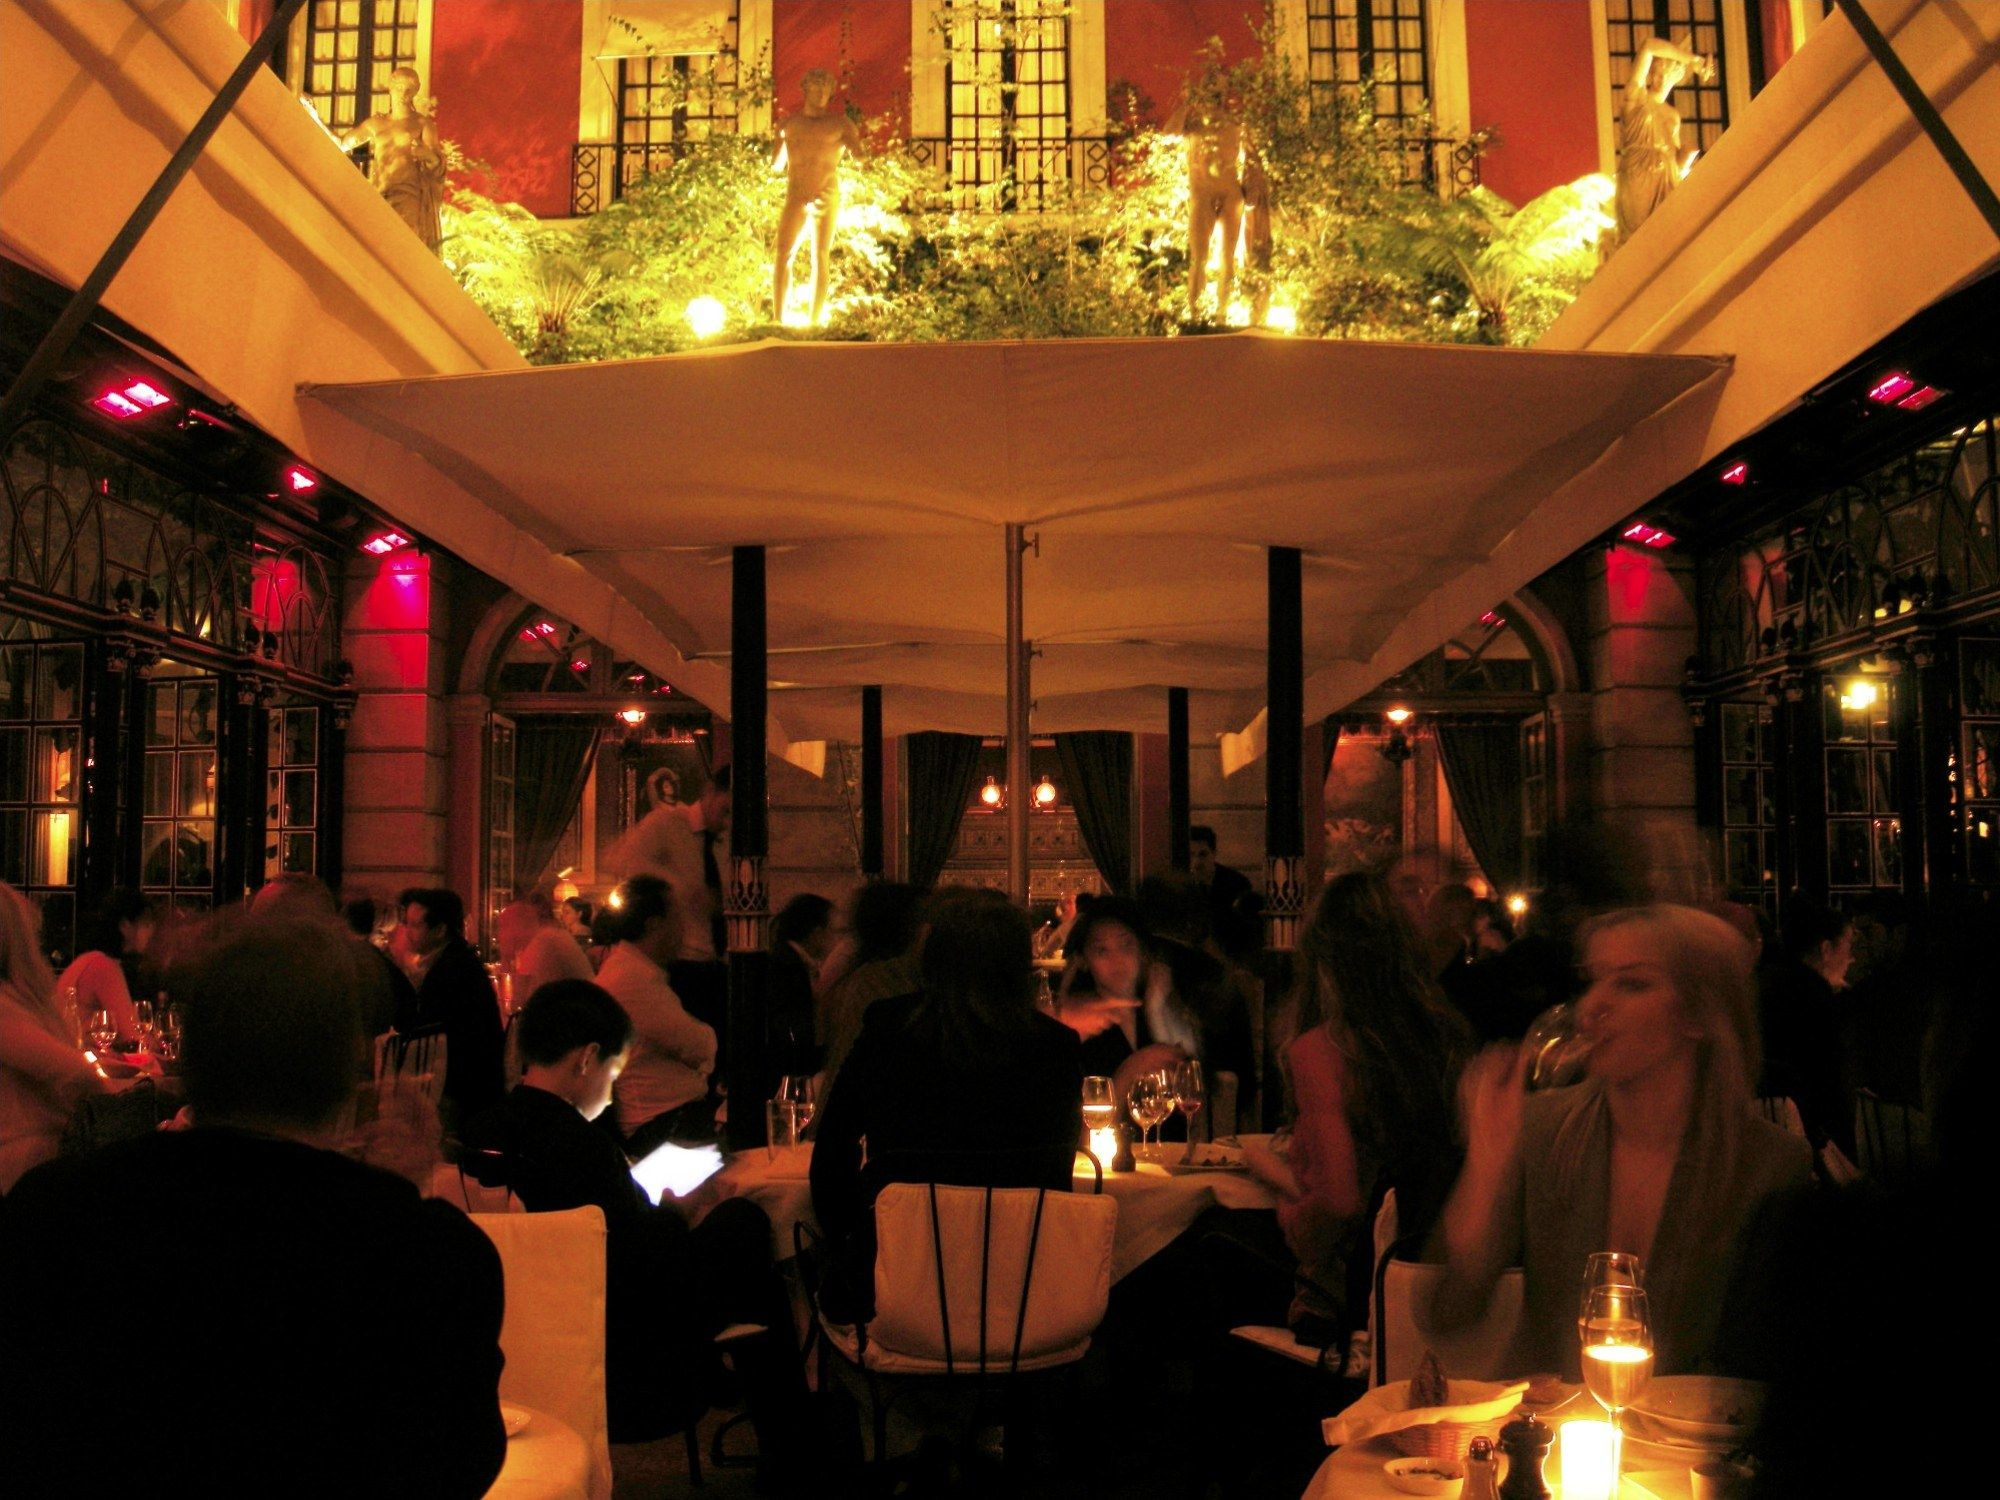 Hotel Costes - The best place to stay in Paris